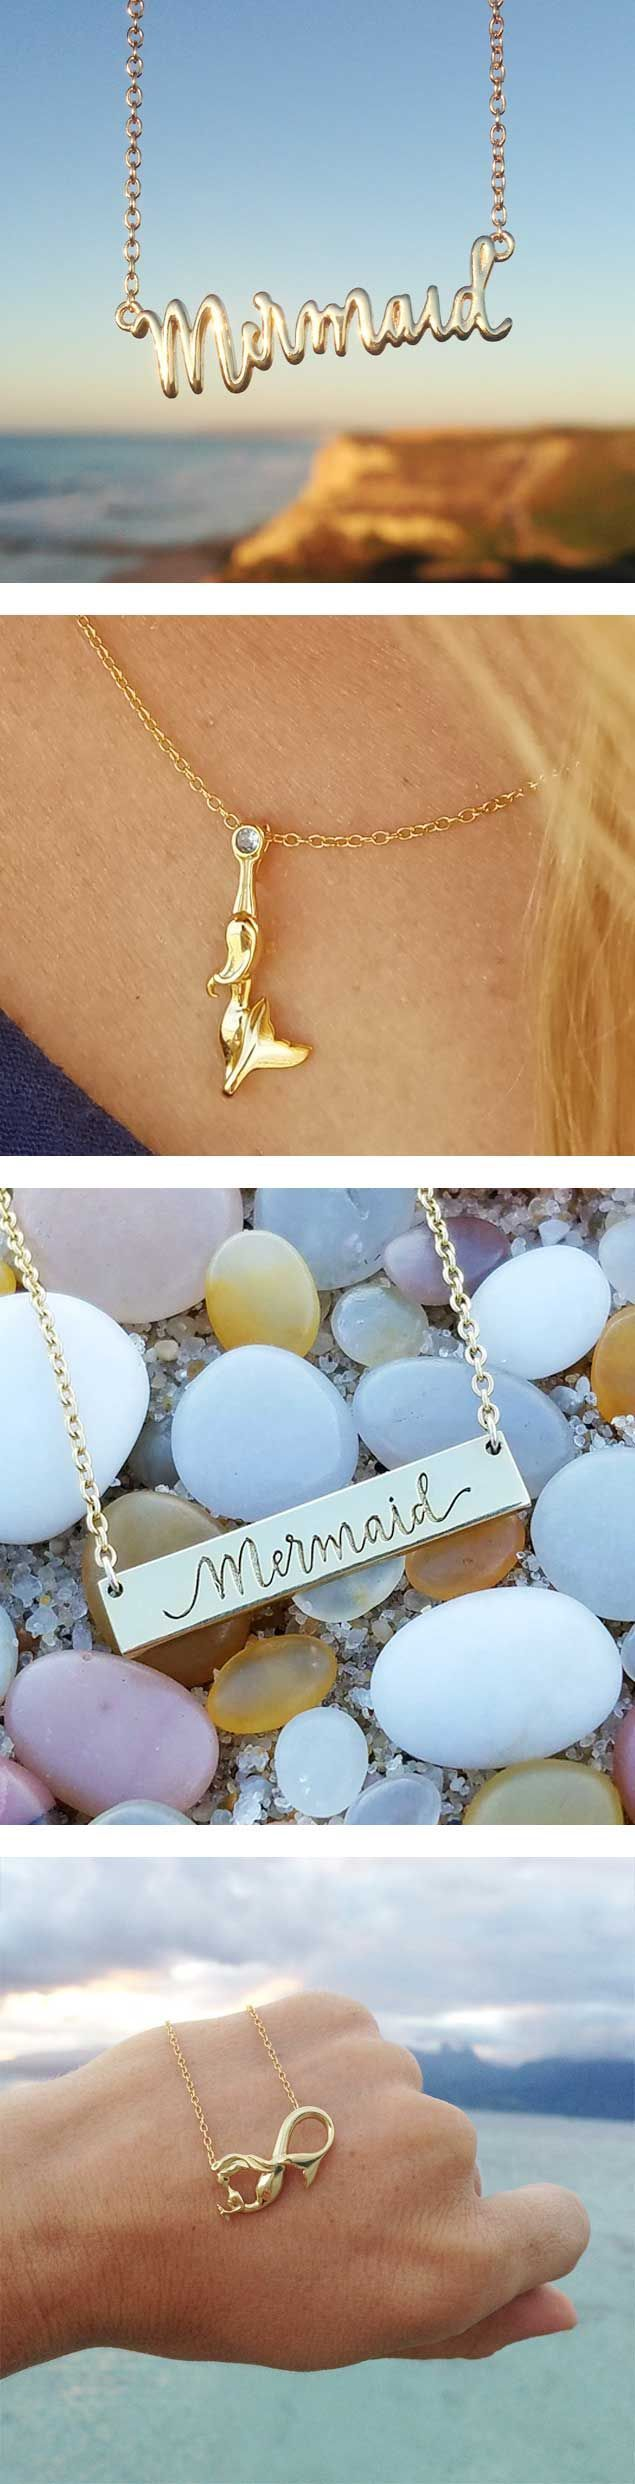 Mermaid necklaces are the perfect gift for anyone who loves mermaids and the sea.